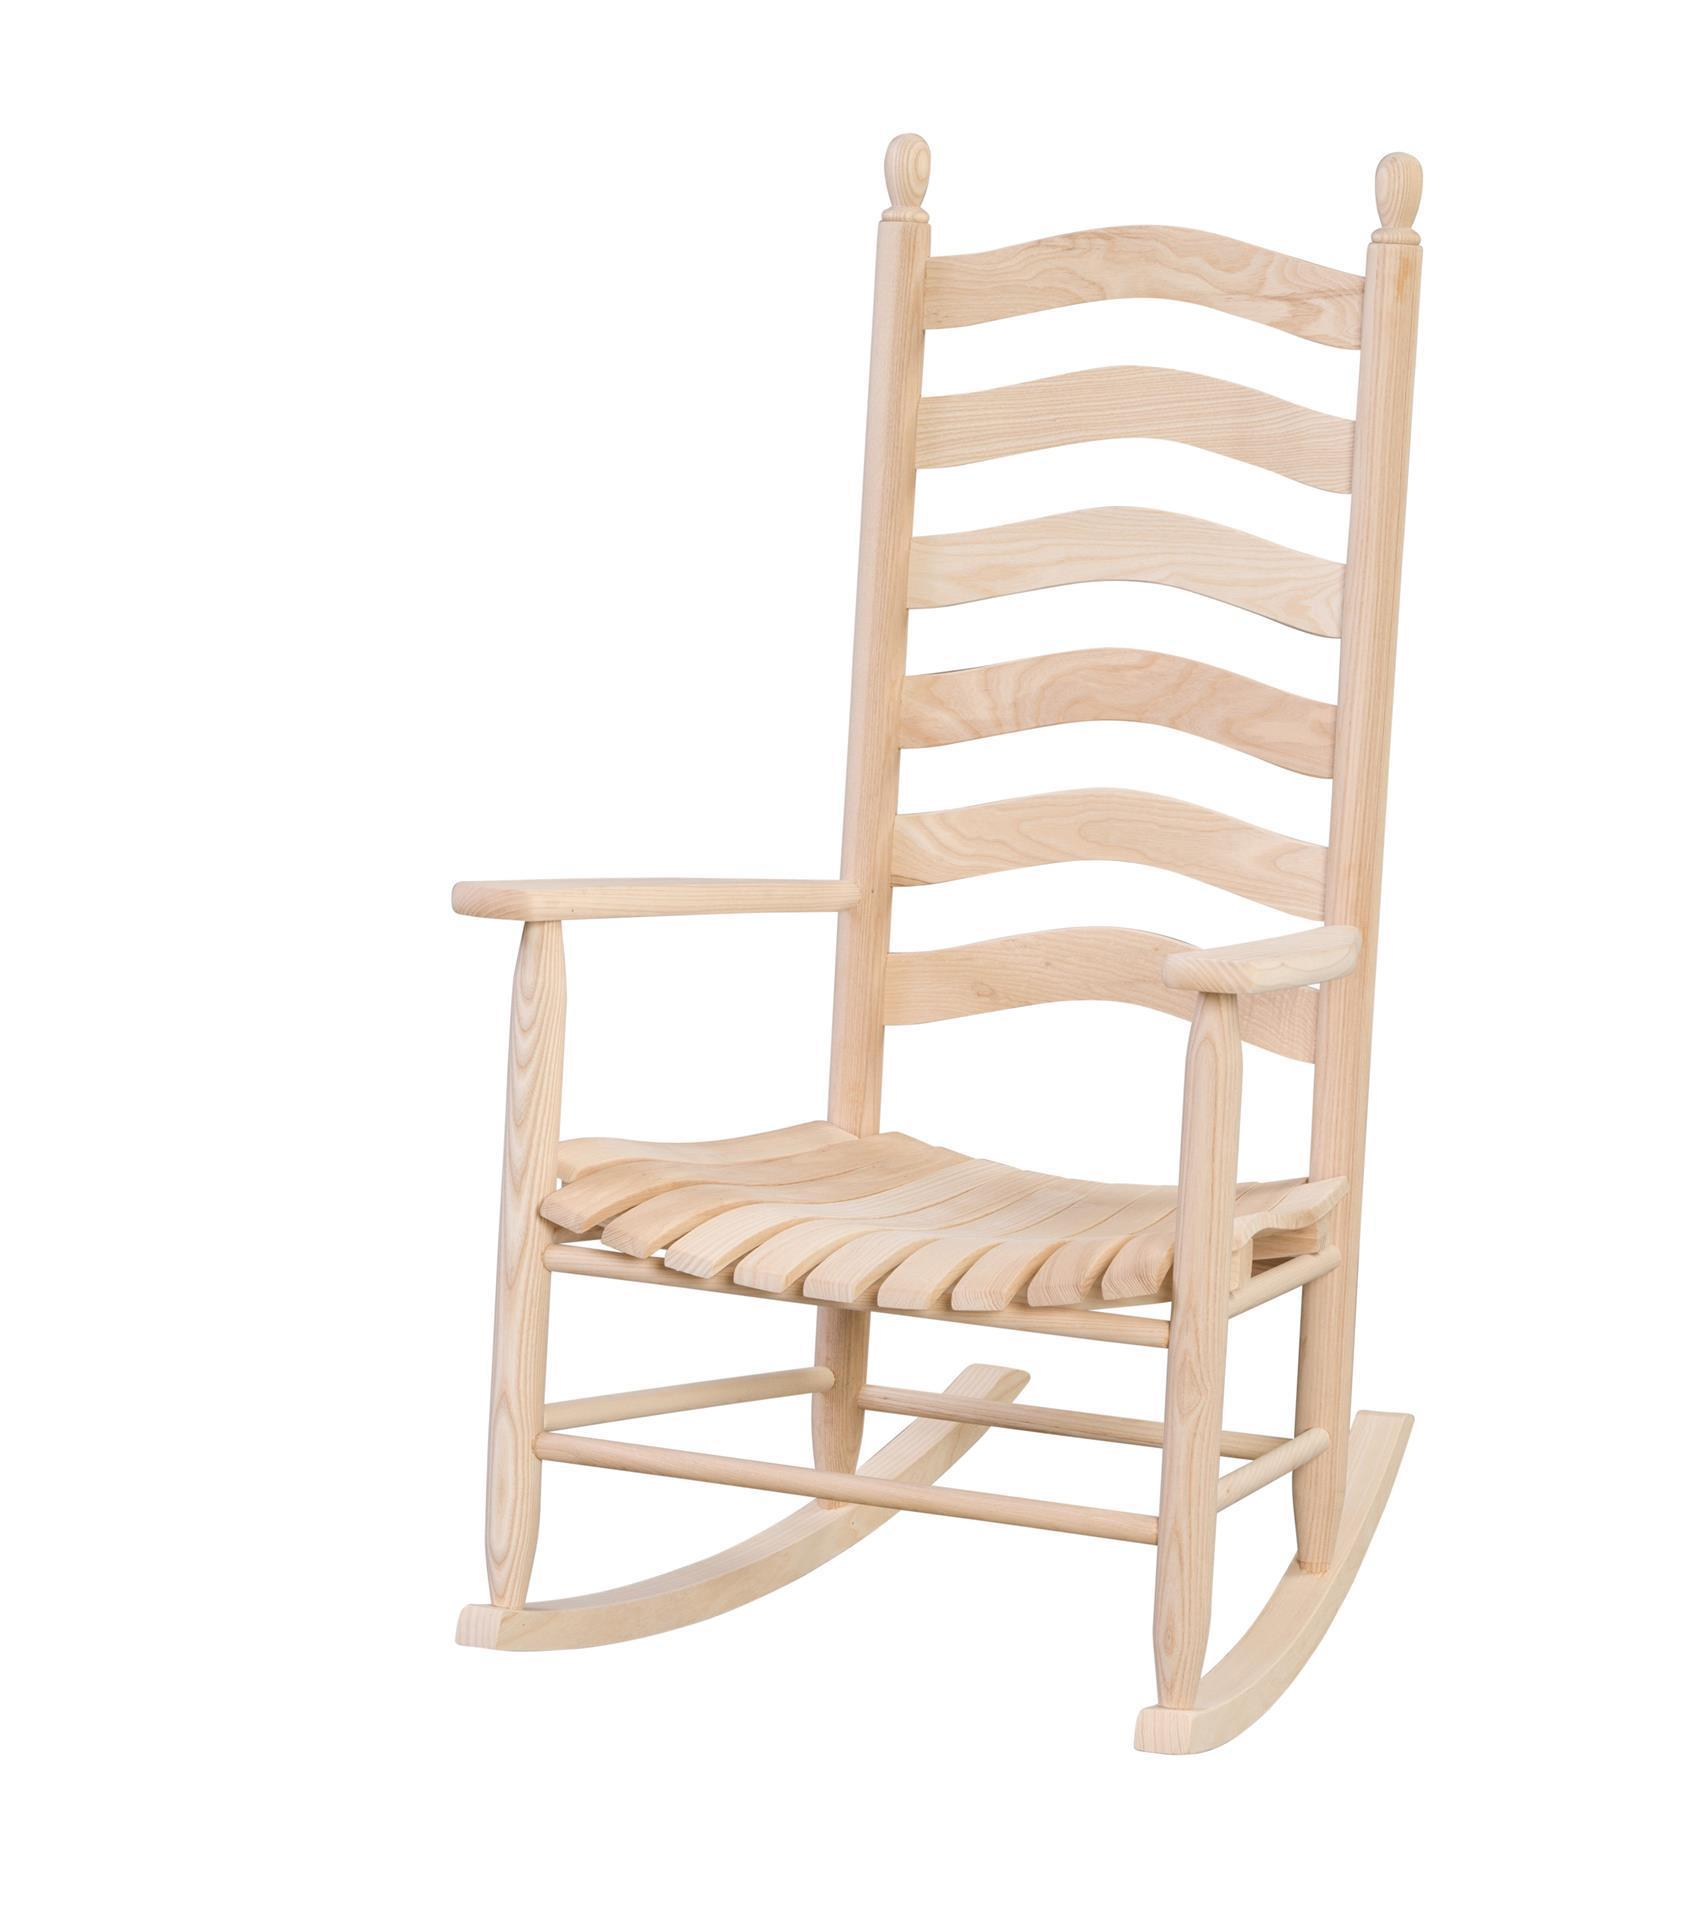 ash ladderback rocking chair from dutchcrafters amish furniture. Black Bedroom Furniture Sets. Home Design Ideas